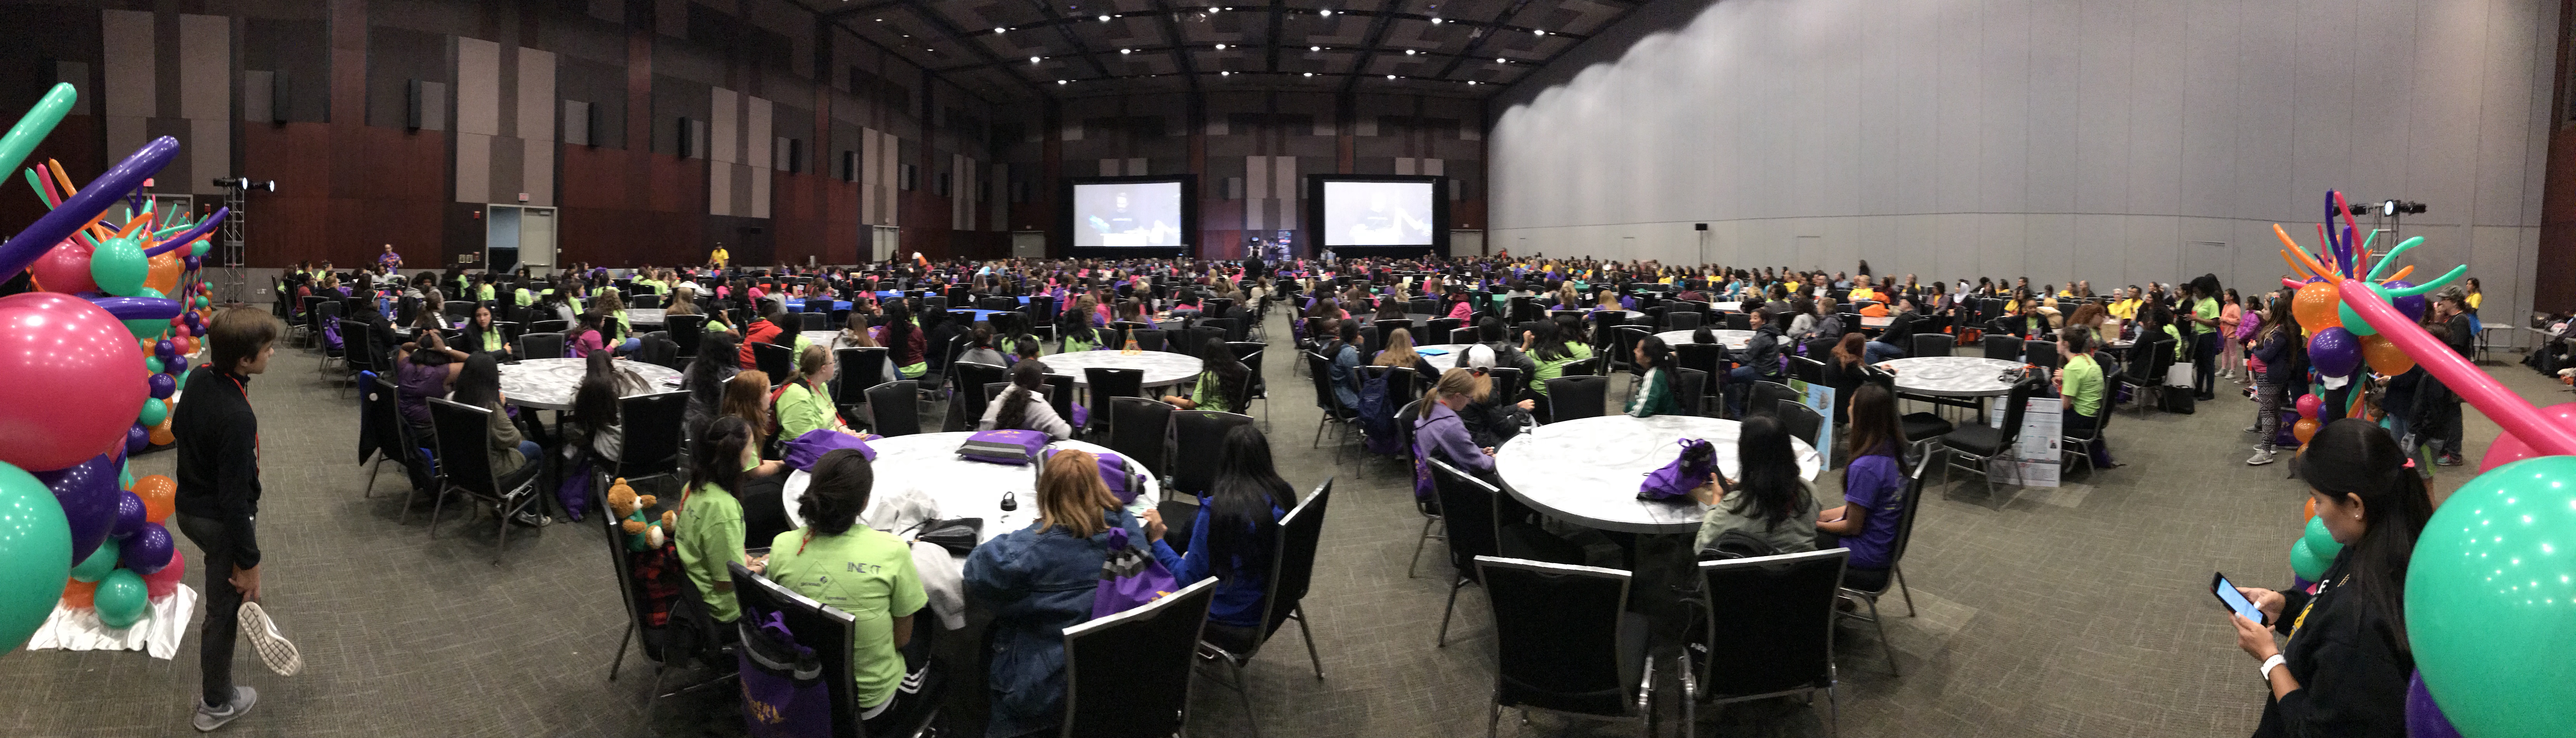 Event Recap: WE17 Conference in Austin | Society of Women